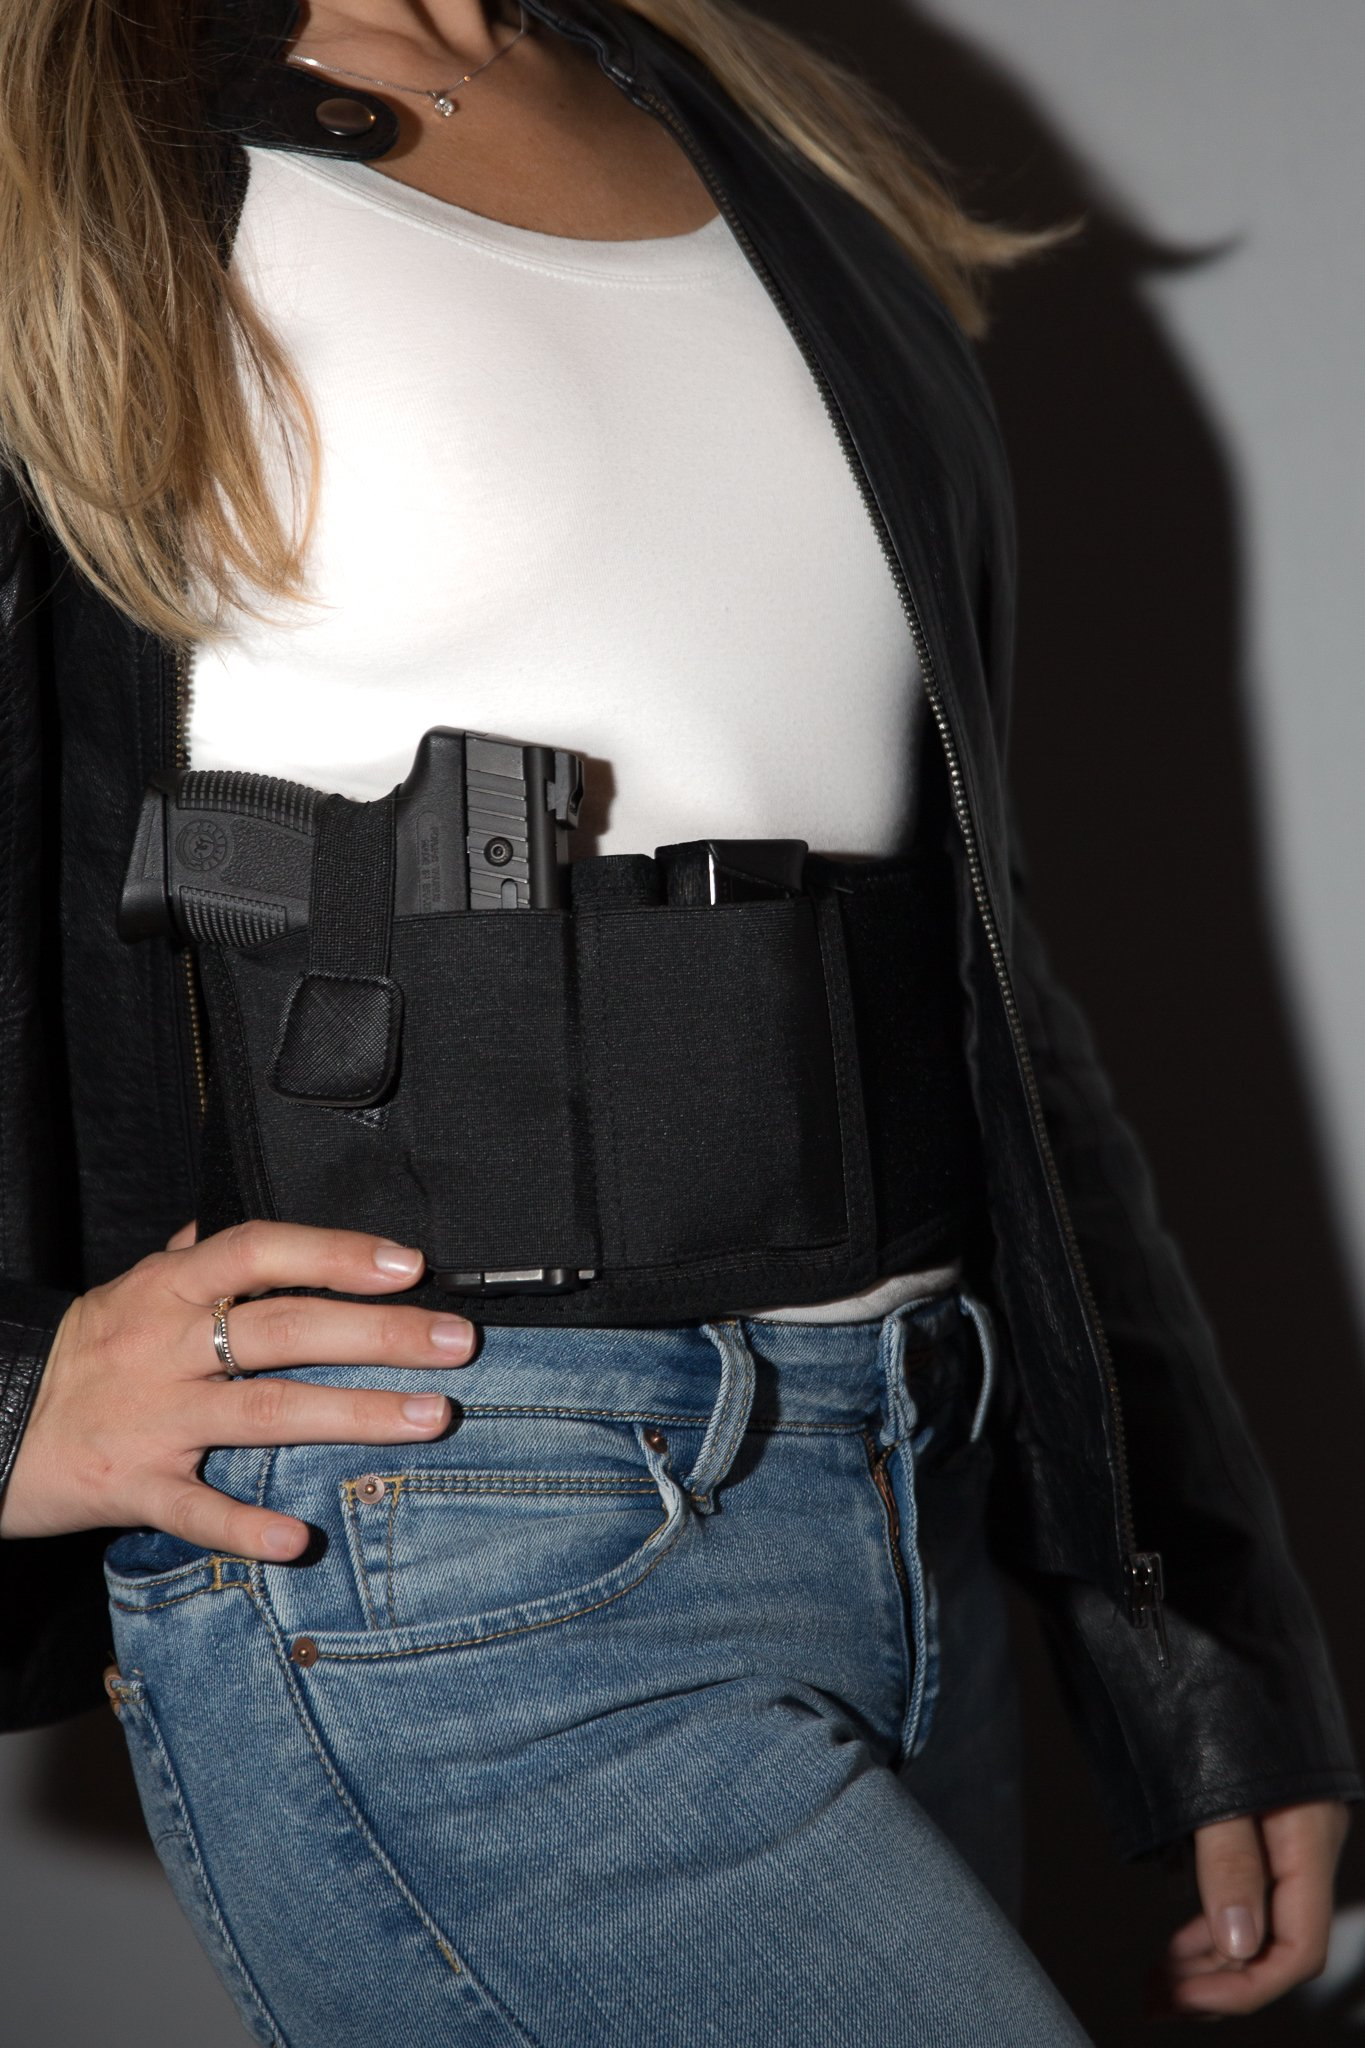 Concealed Carry Holster Fanny Pack by Gabico | Safe Belly Band for Glock Gun Concealment|Inside/Outside Waistband Wrap Belt for Men and Women|Ultimate Comfort for Running|Fits 4 Size Pistols|Black